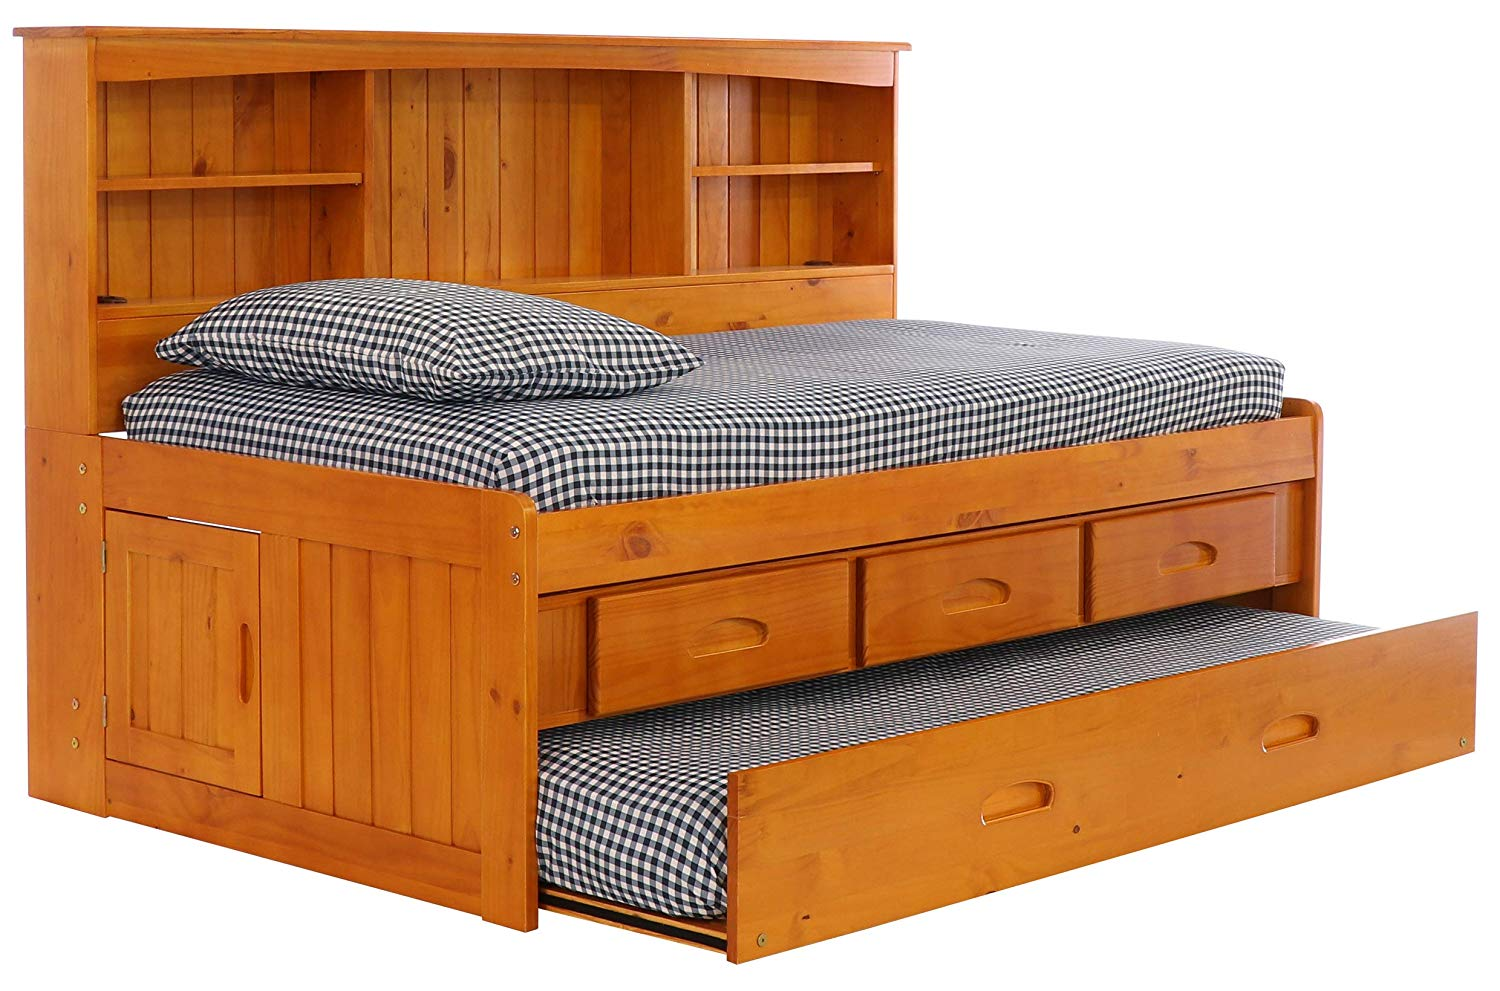 Best Twin Trundle Bed Reviews 2019 Daybeds Pop Ups We